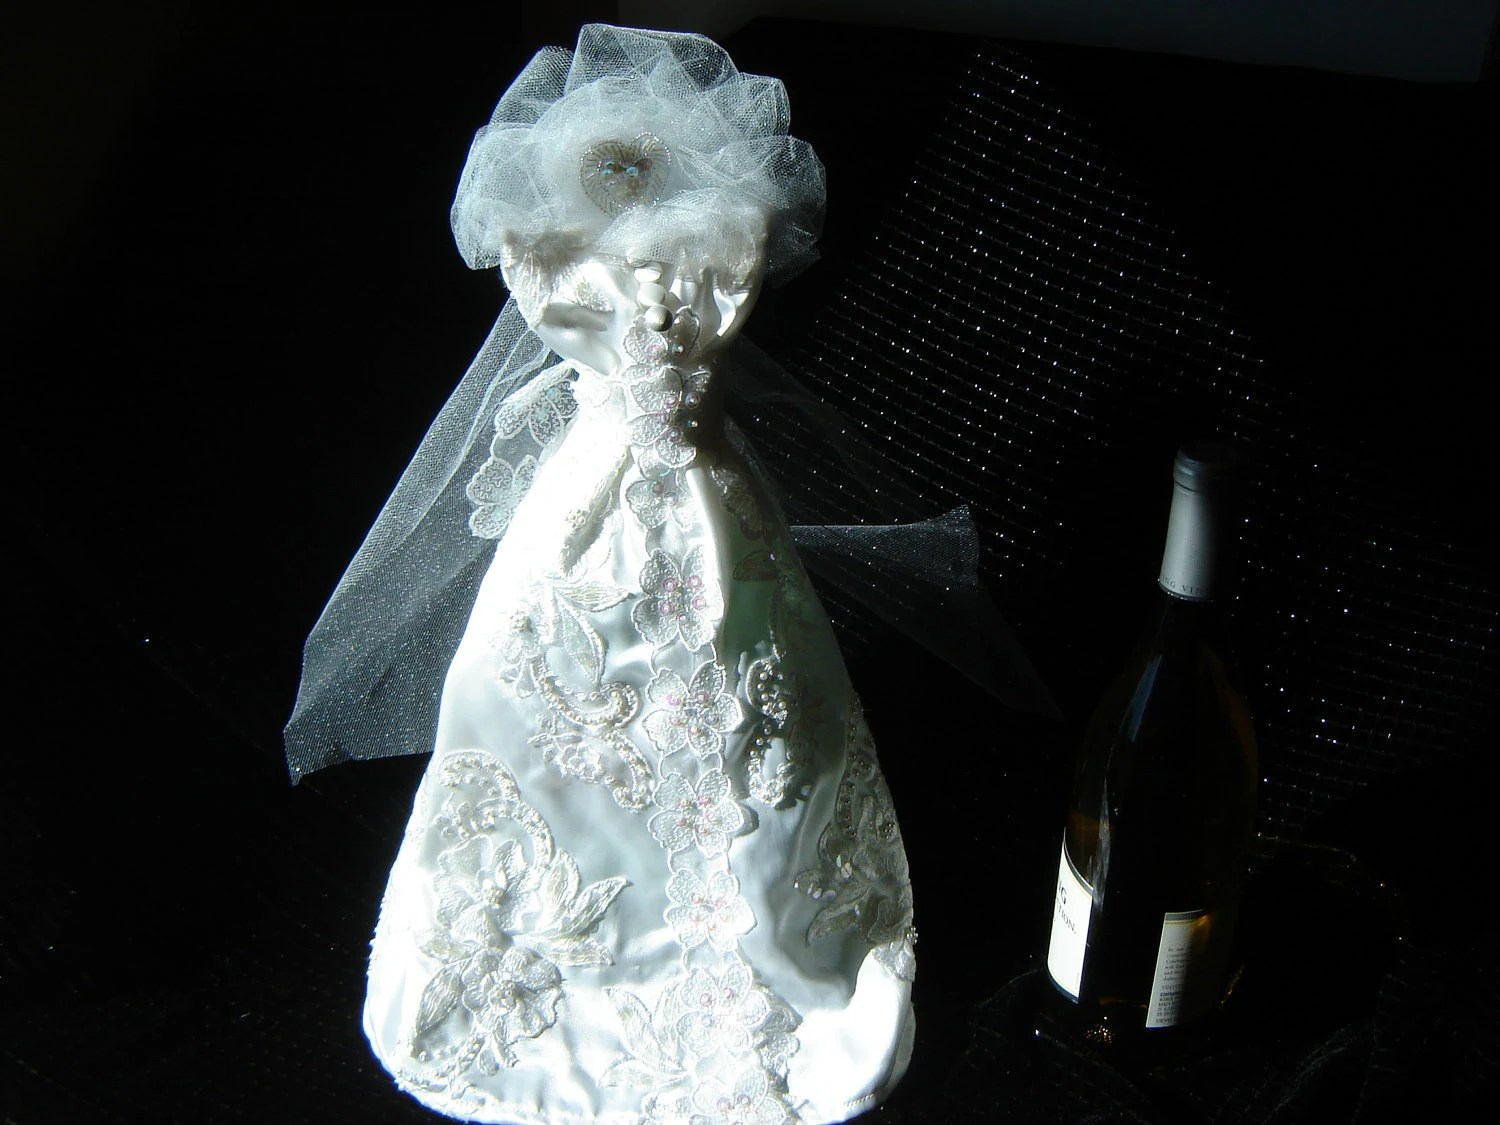 wedding gown wine bottle cover with satiny fabric and a veil with a sequined heart ornament